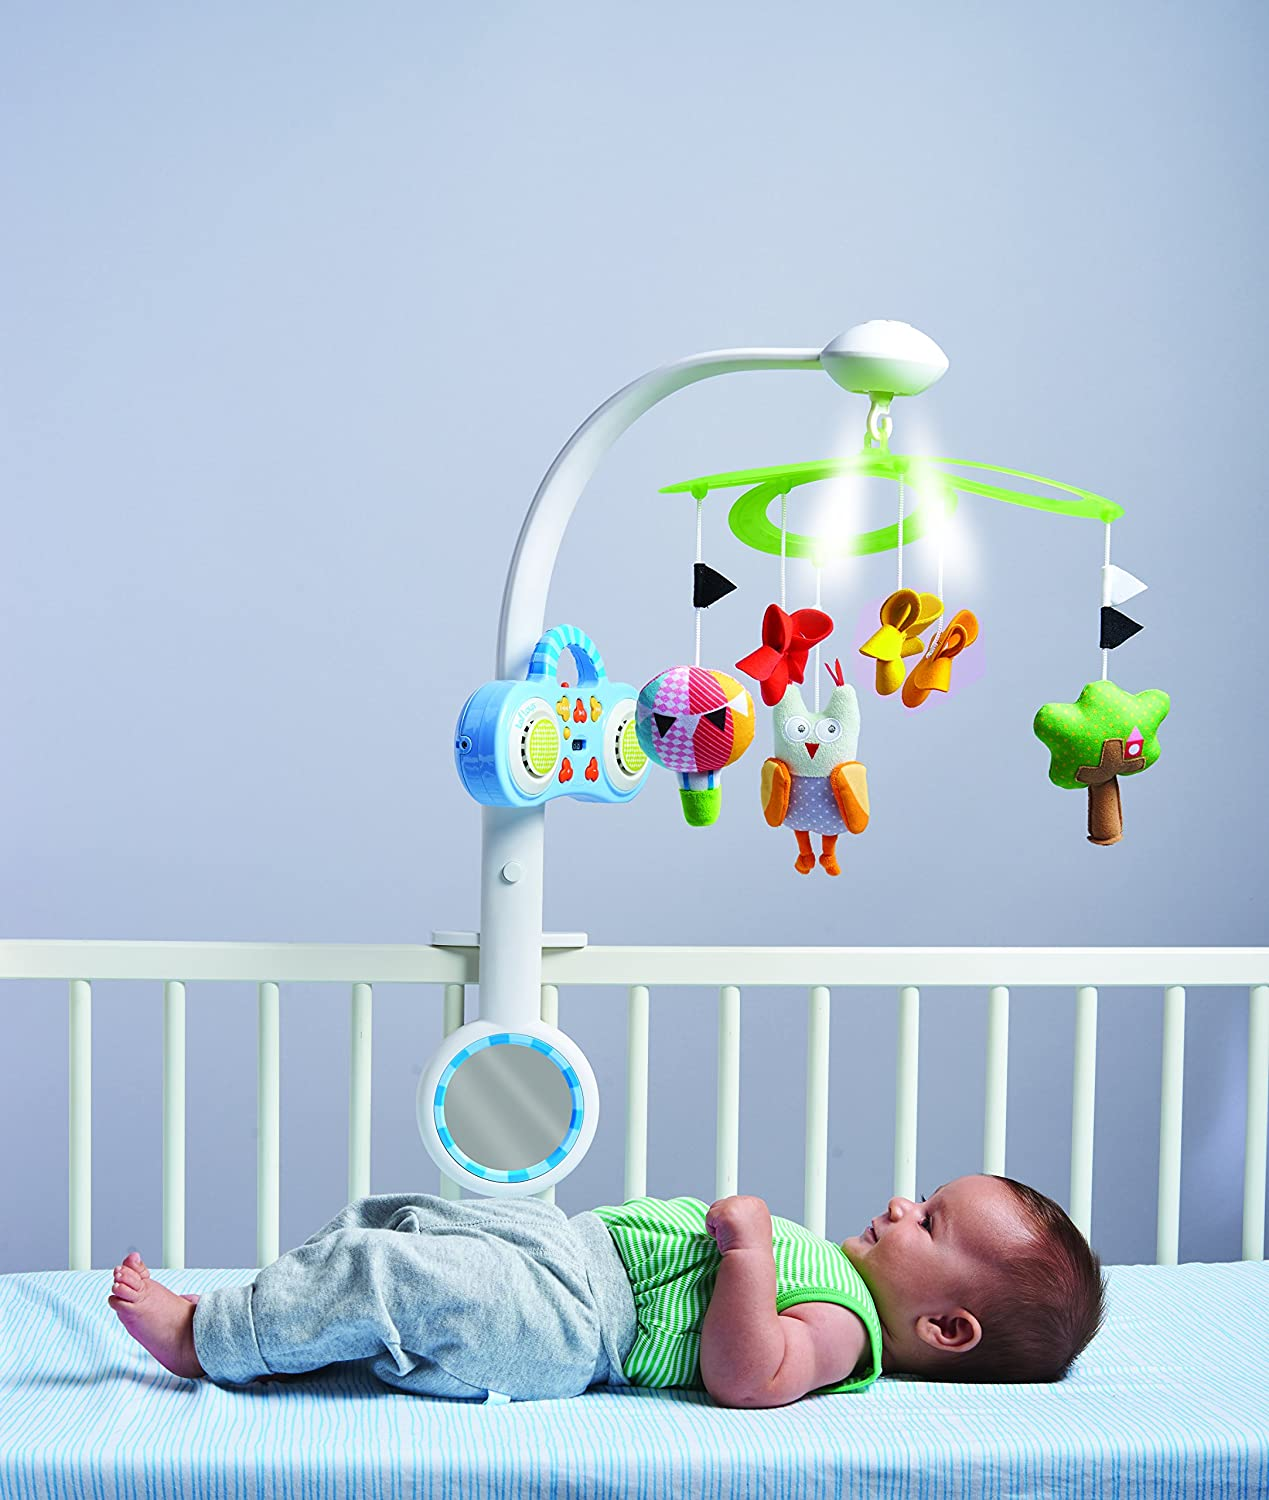 Baby bed mobile - Amazon Com Taf Toys Baby Crib Mobile Musical Stereo Mp3 Owl Baby Mobile With Detachable Mp3 Player Baby